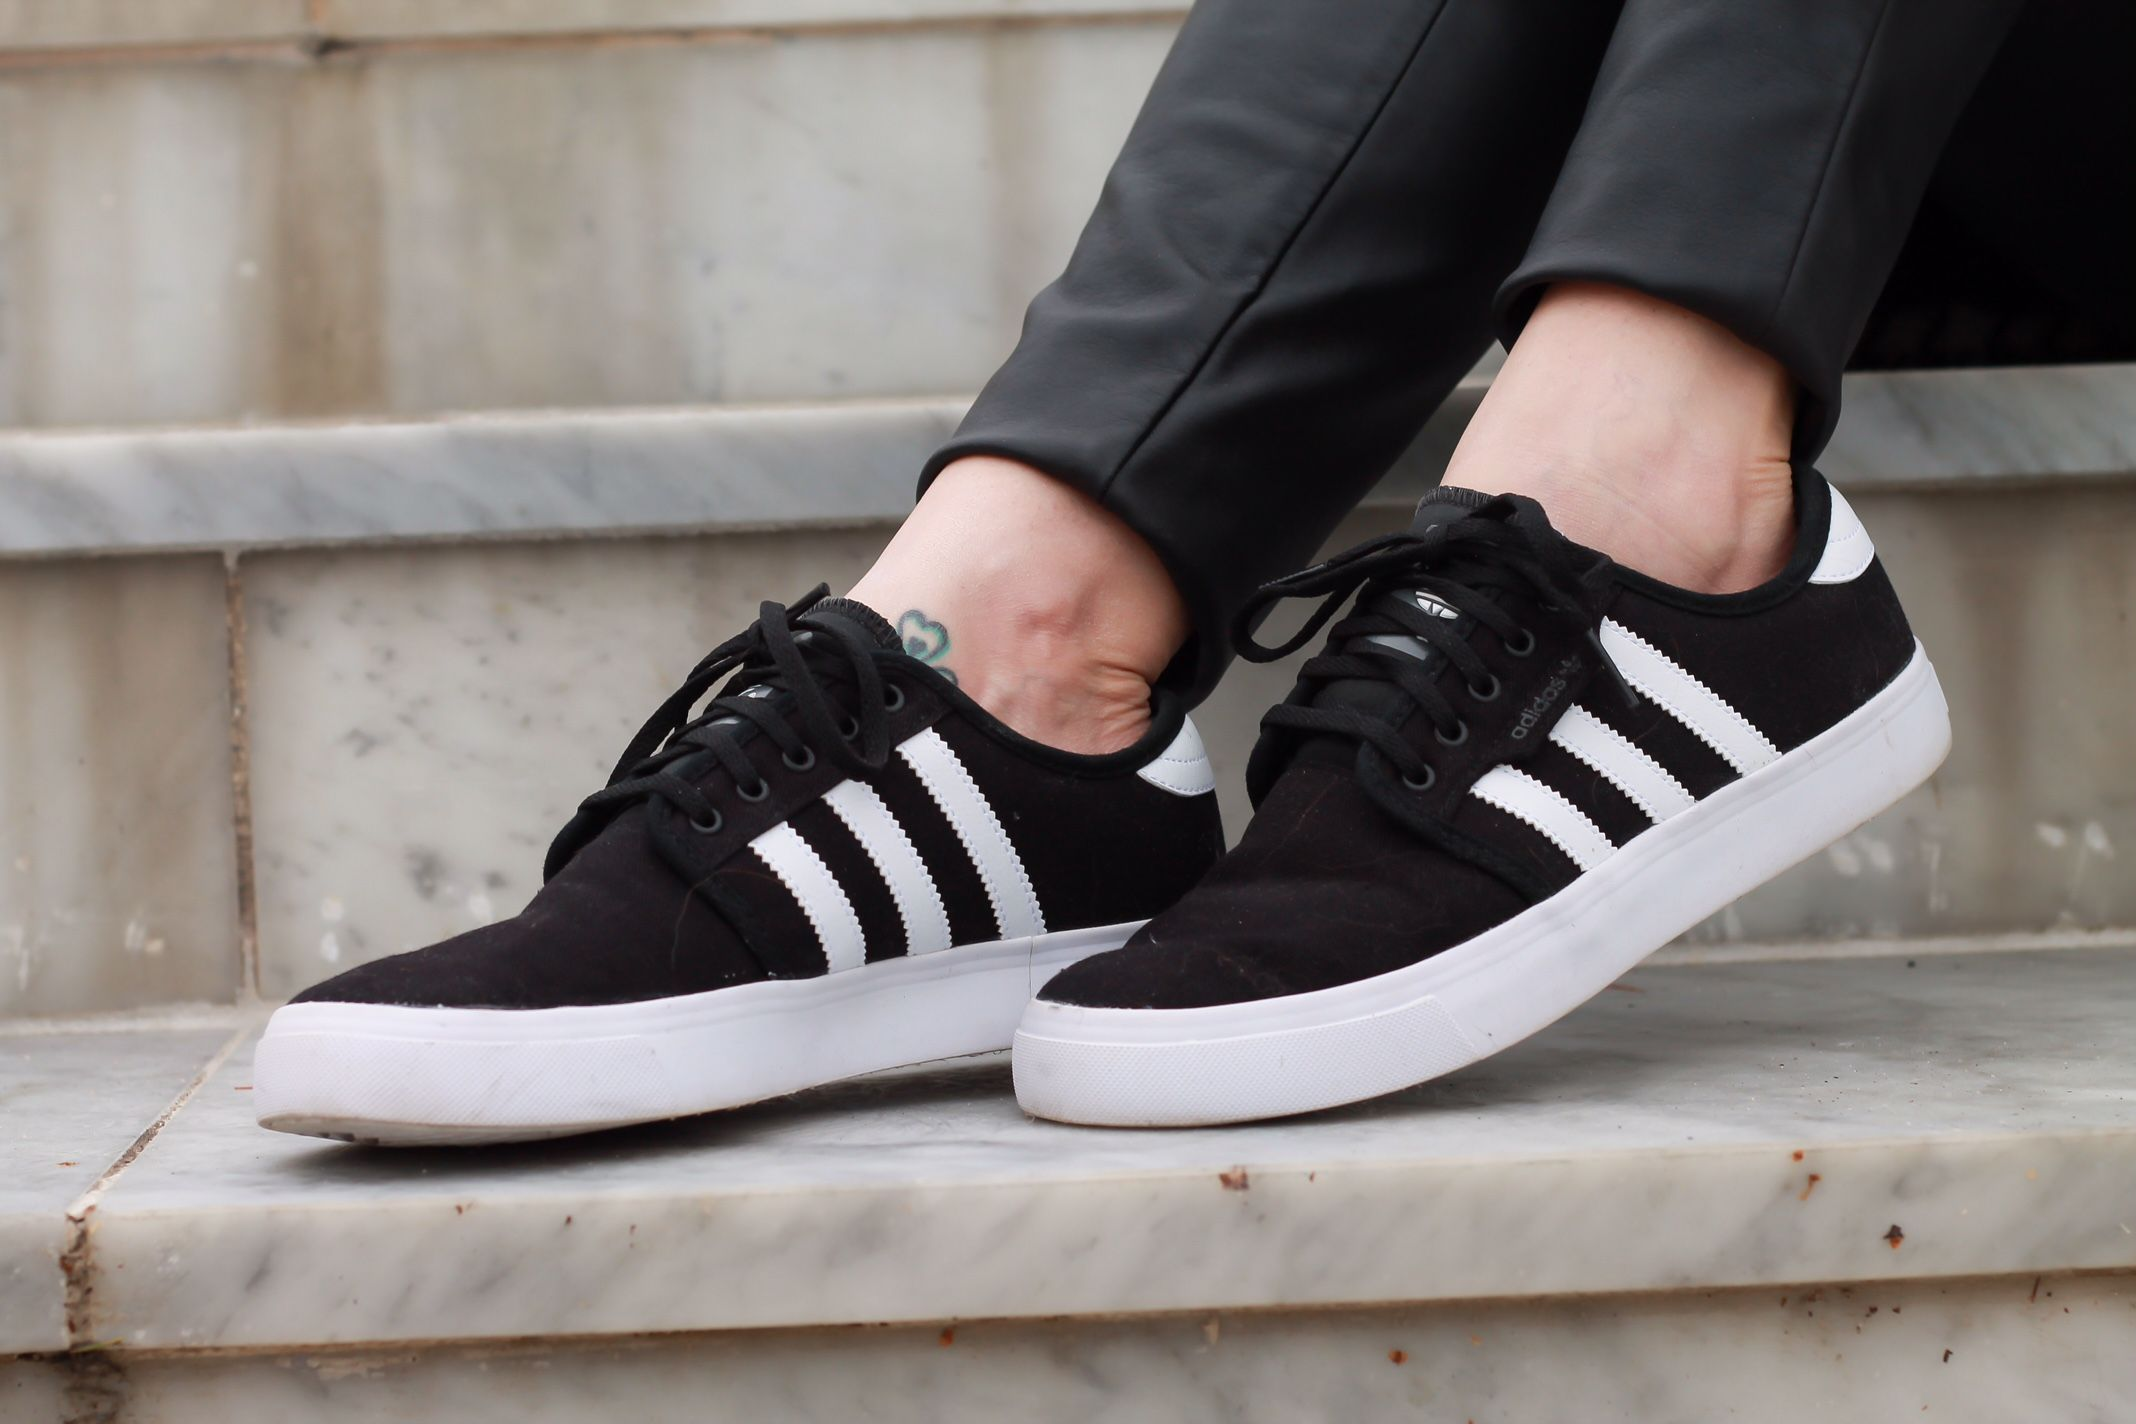 Authentic New Adidas Gazelle 2 146795 SPY Black R.White Free